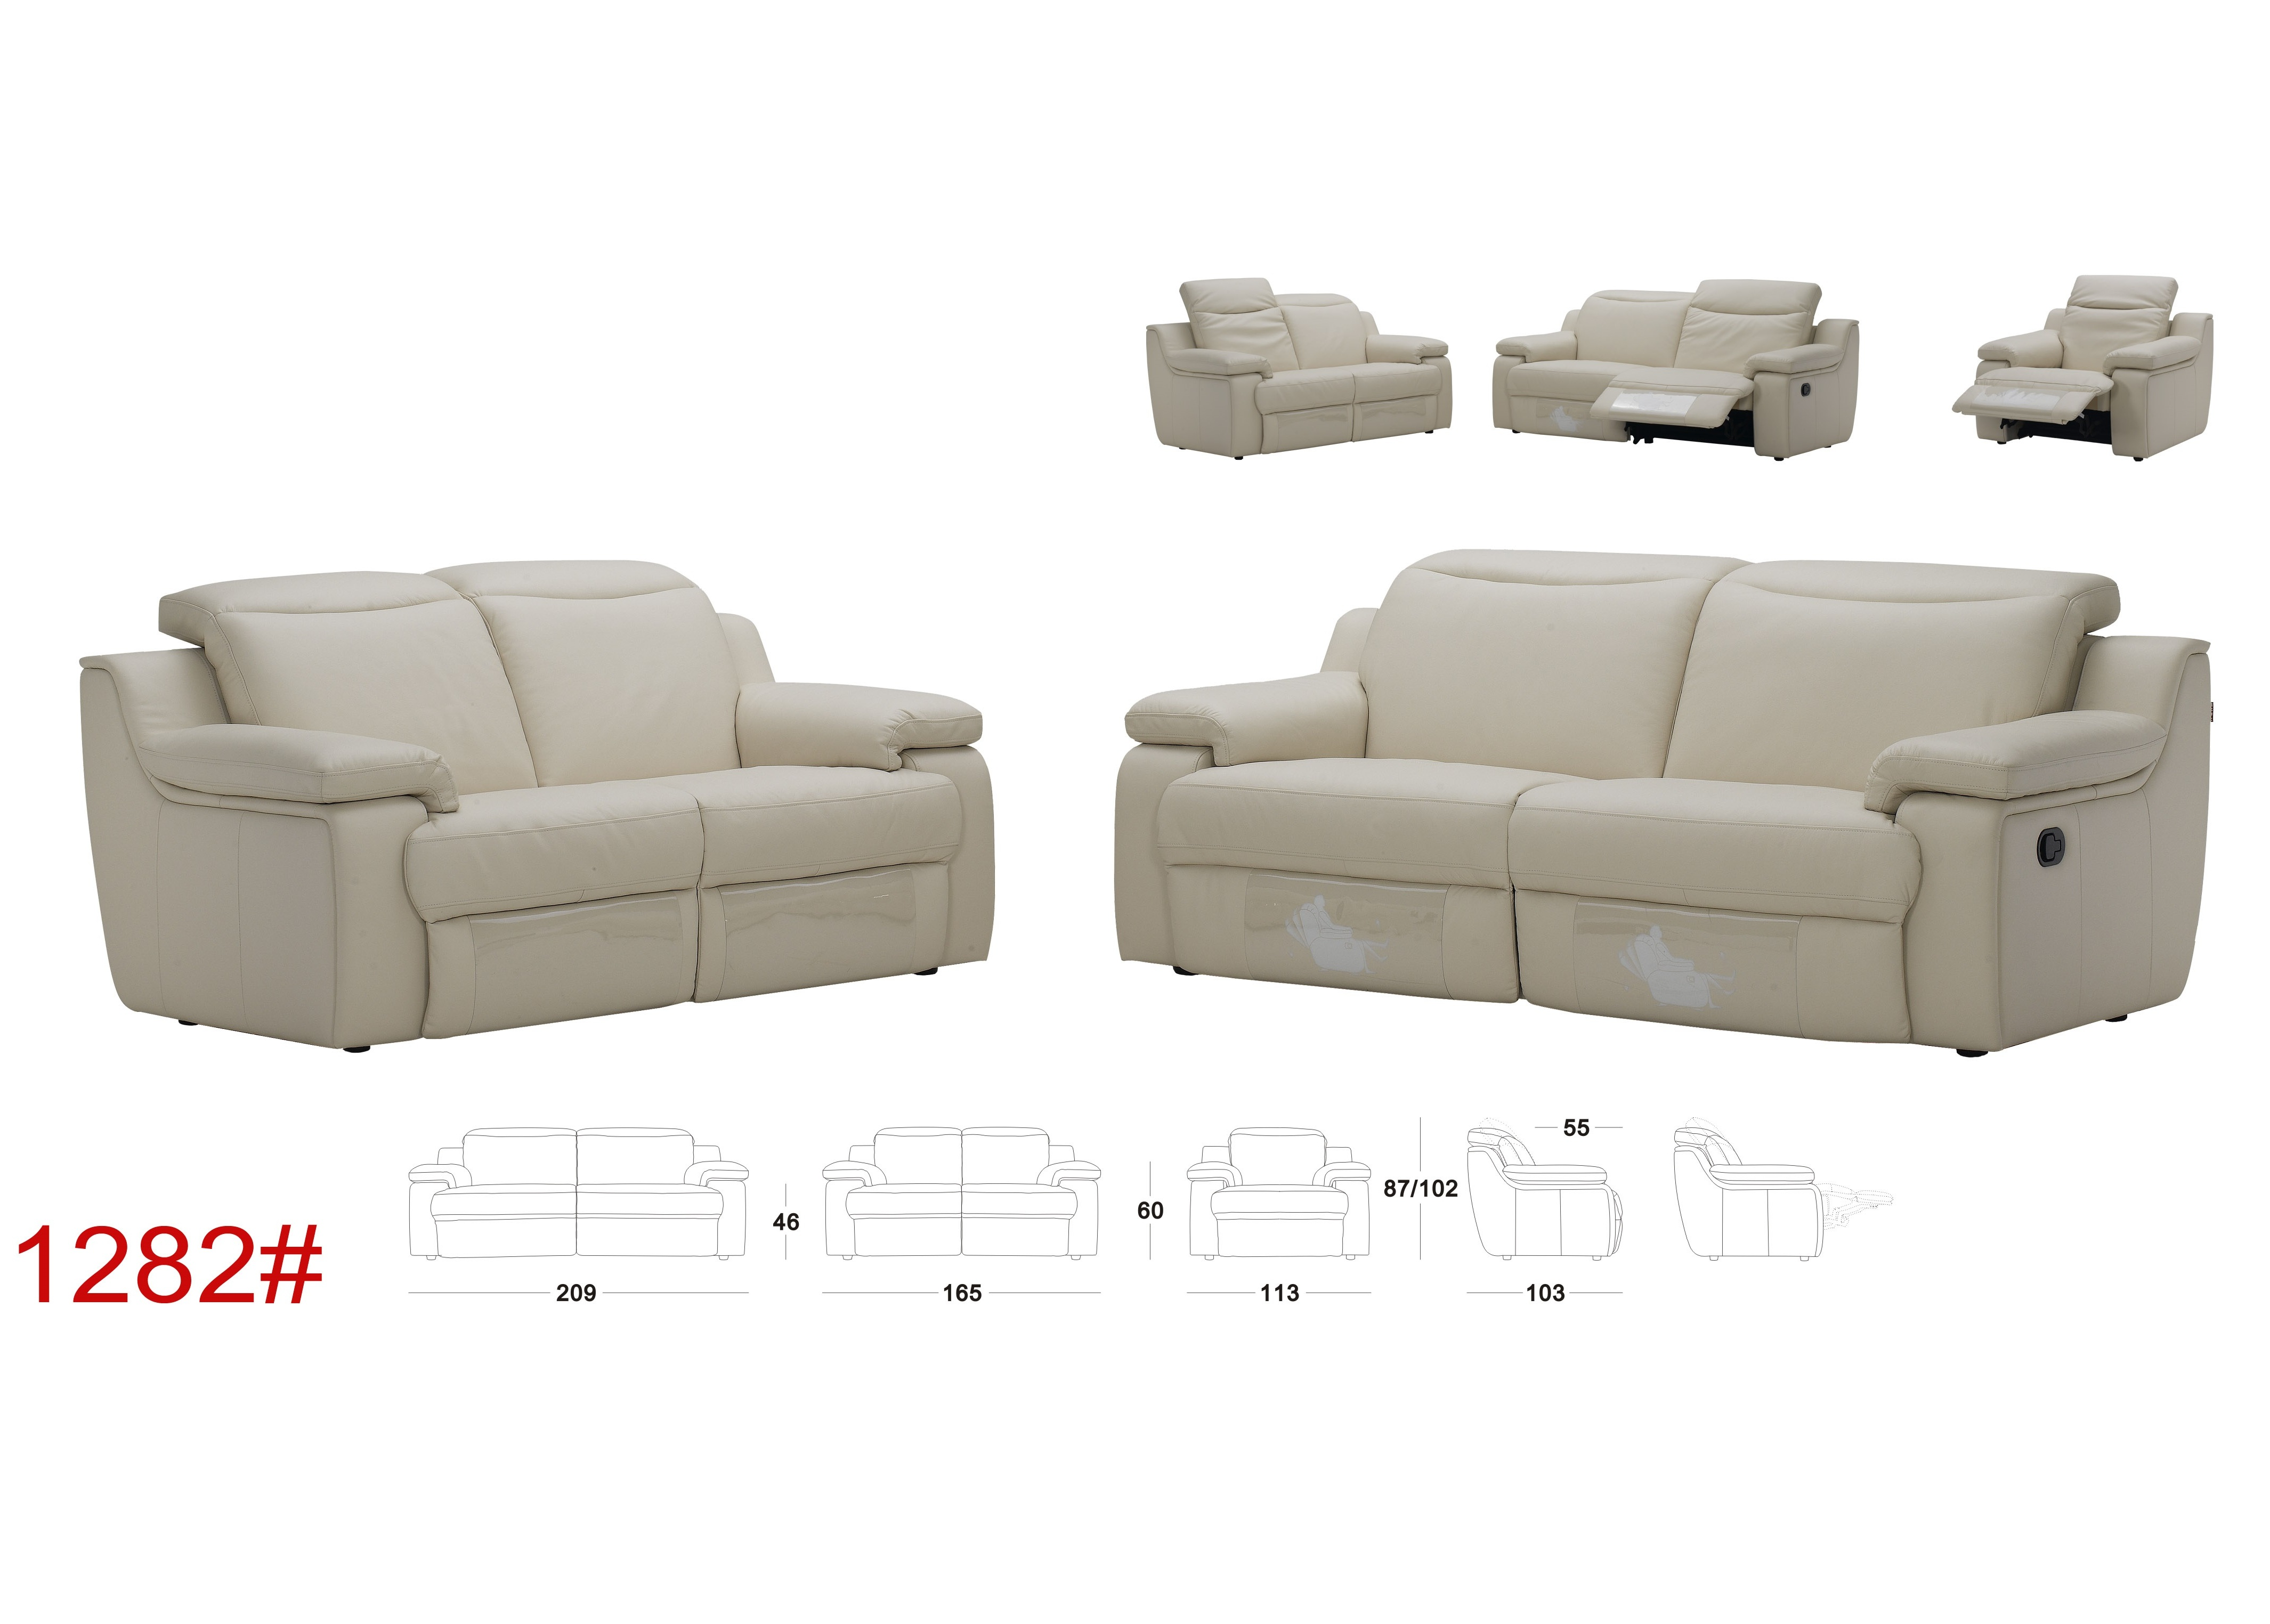 Plum Sofa With Motorized Reclining Function Not Just Brown